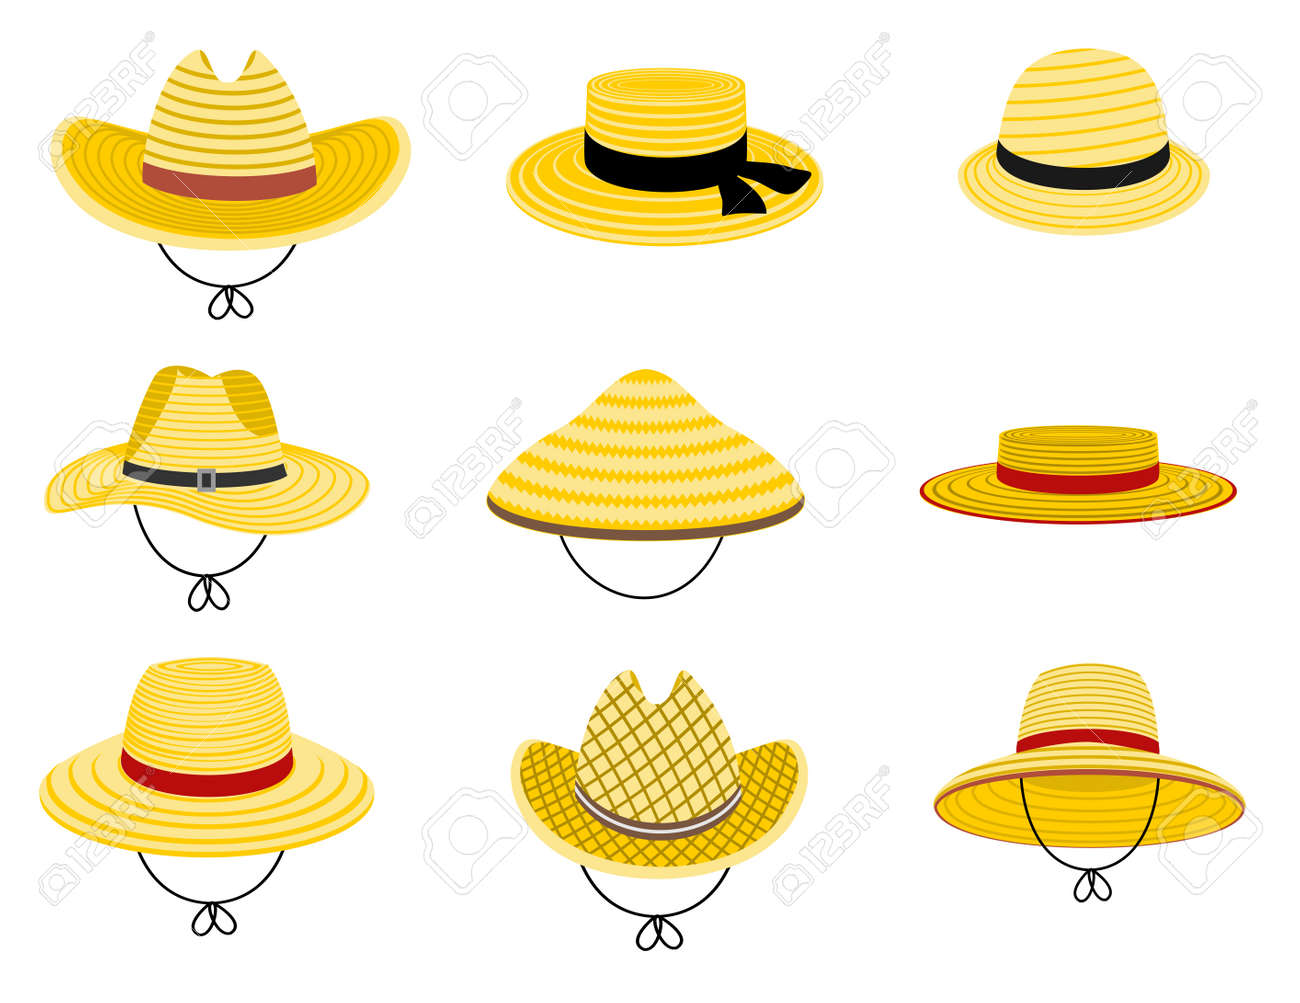 Farmers gardening hats. Summer traditional agriculture rural headdress. Asian japan hat, straw american cowboy hat and and female straw cap, yellow beach head accessory isolated on white background - 169743699